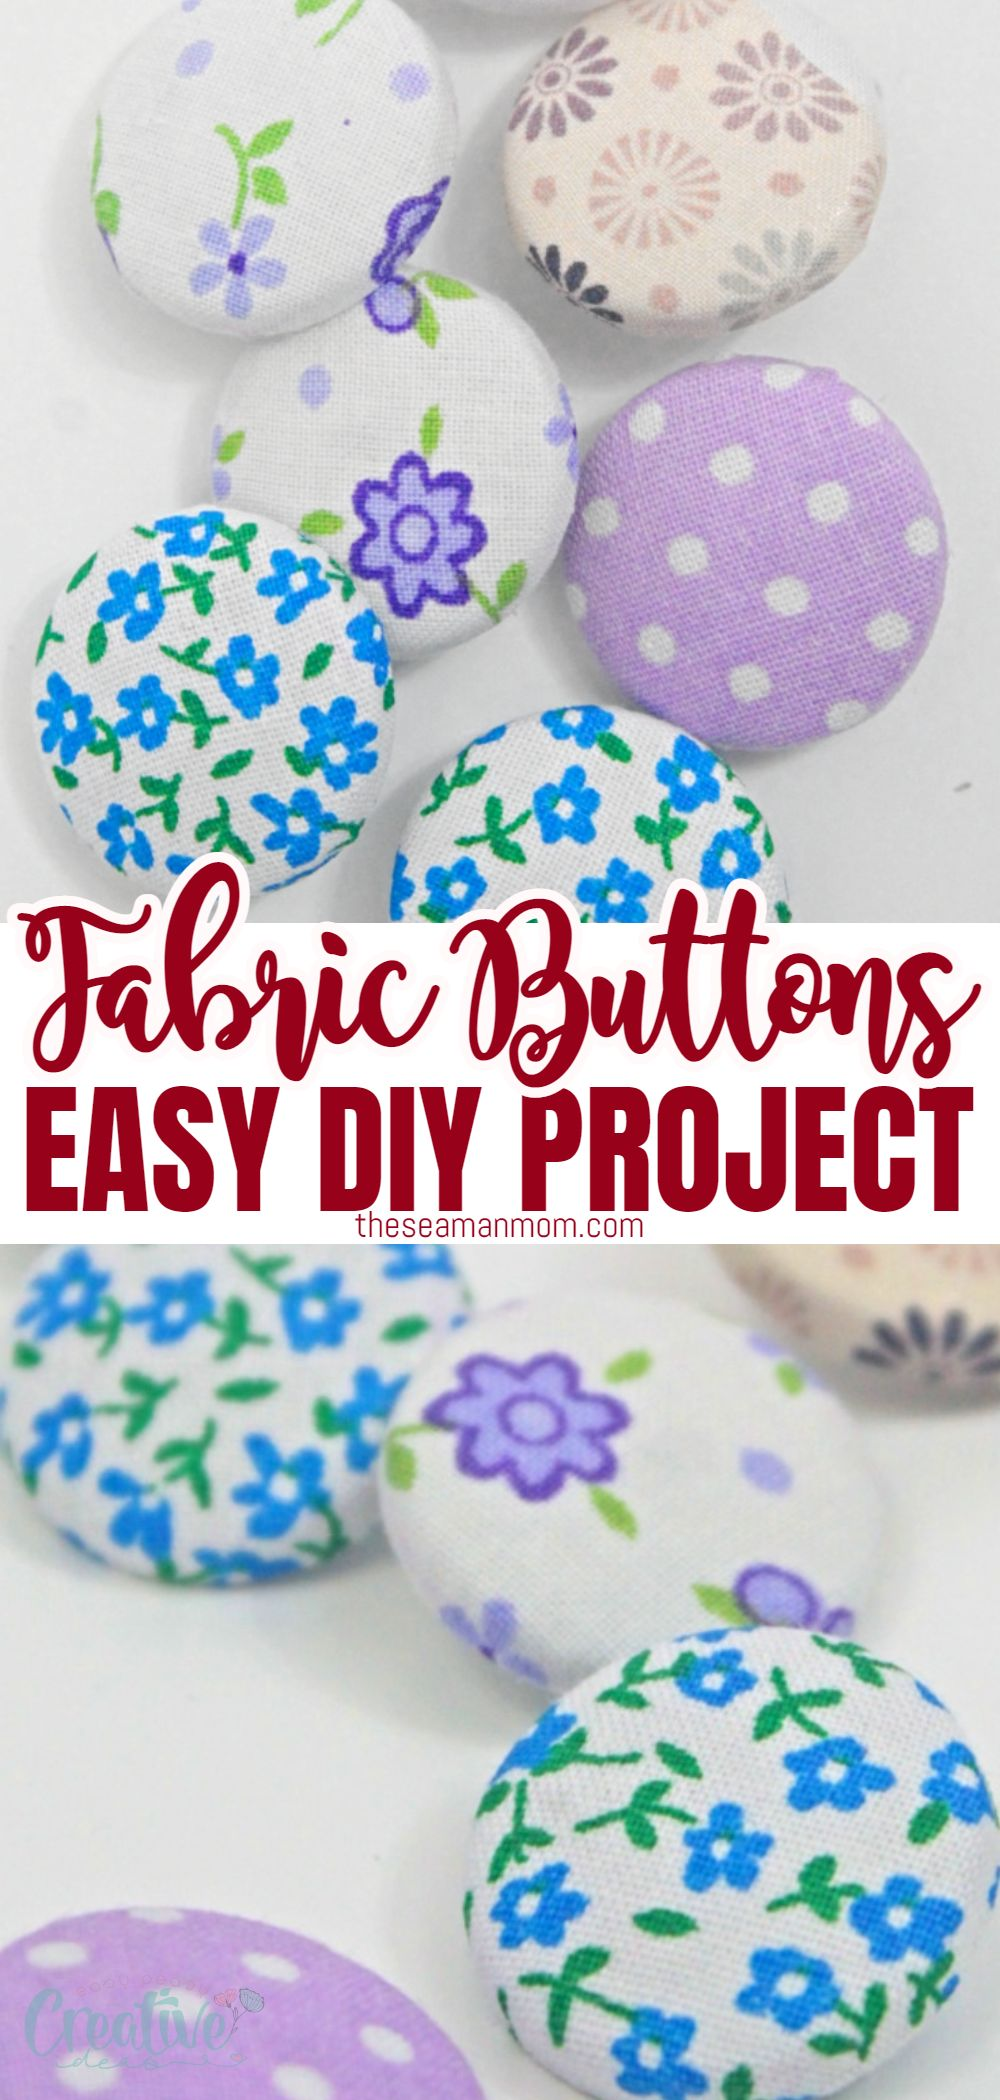 Fabric covered buttons are not an upholstery only attribute anymore, these cute notions are more and more used in sewing and craft projects too! Learn how to make fabric buttons for your own projects at home without any special tools or a button cover kit! via @petroneagu